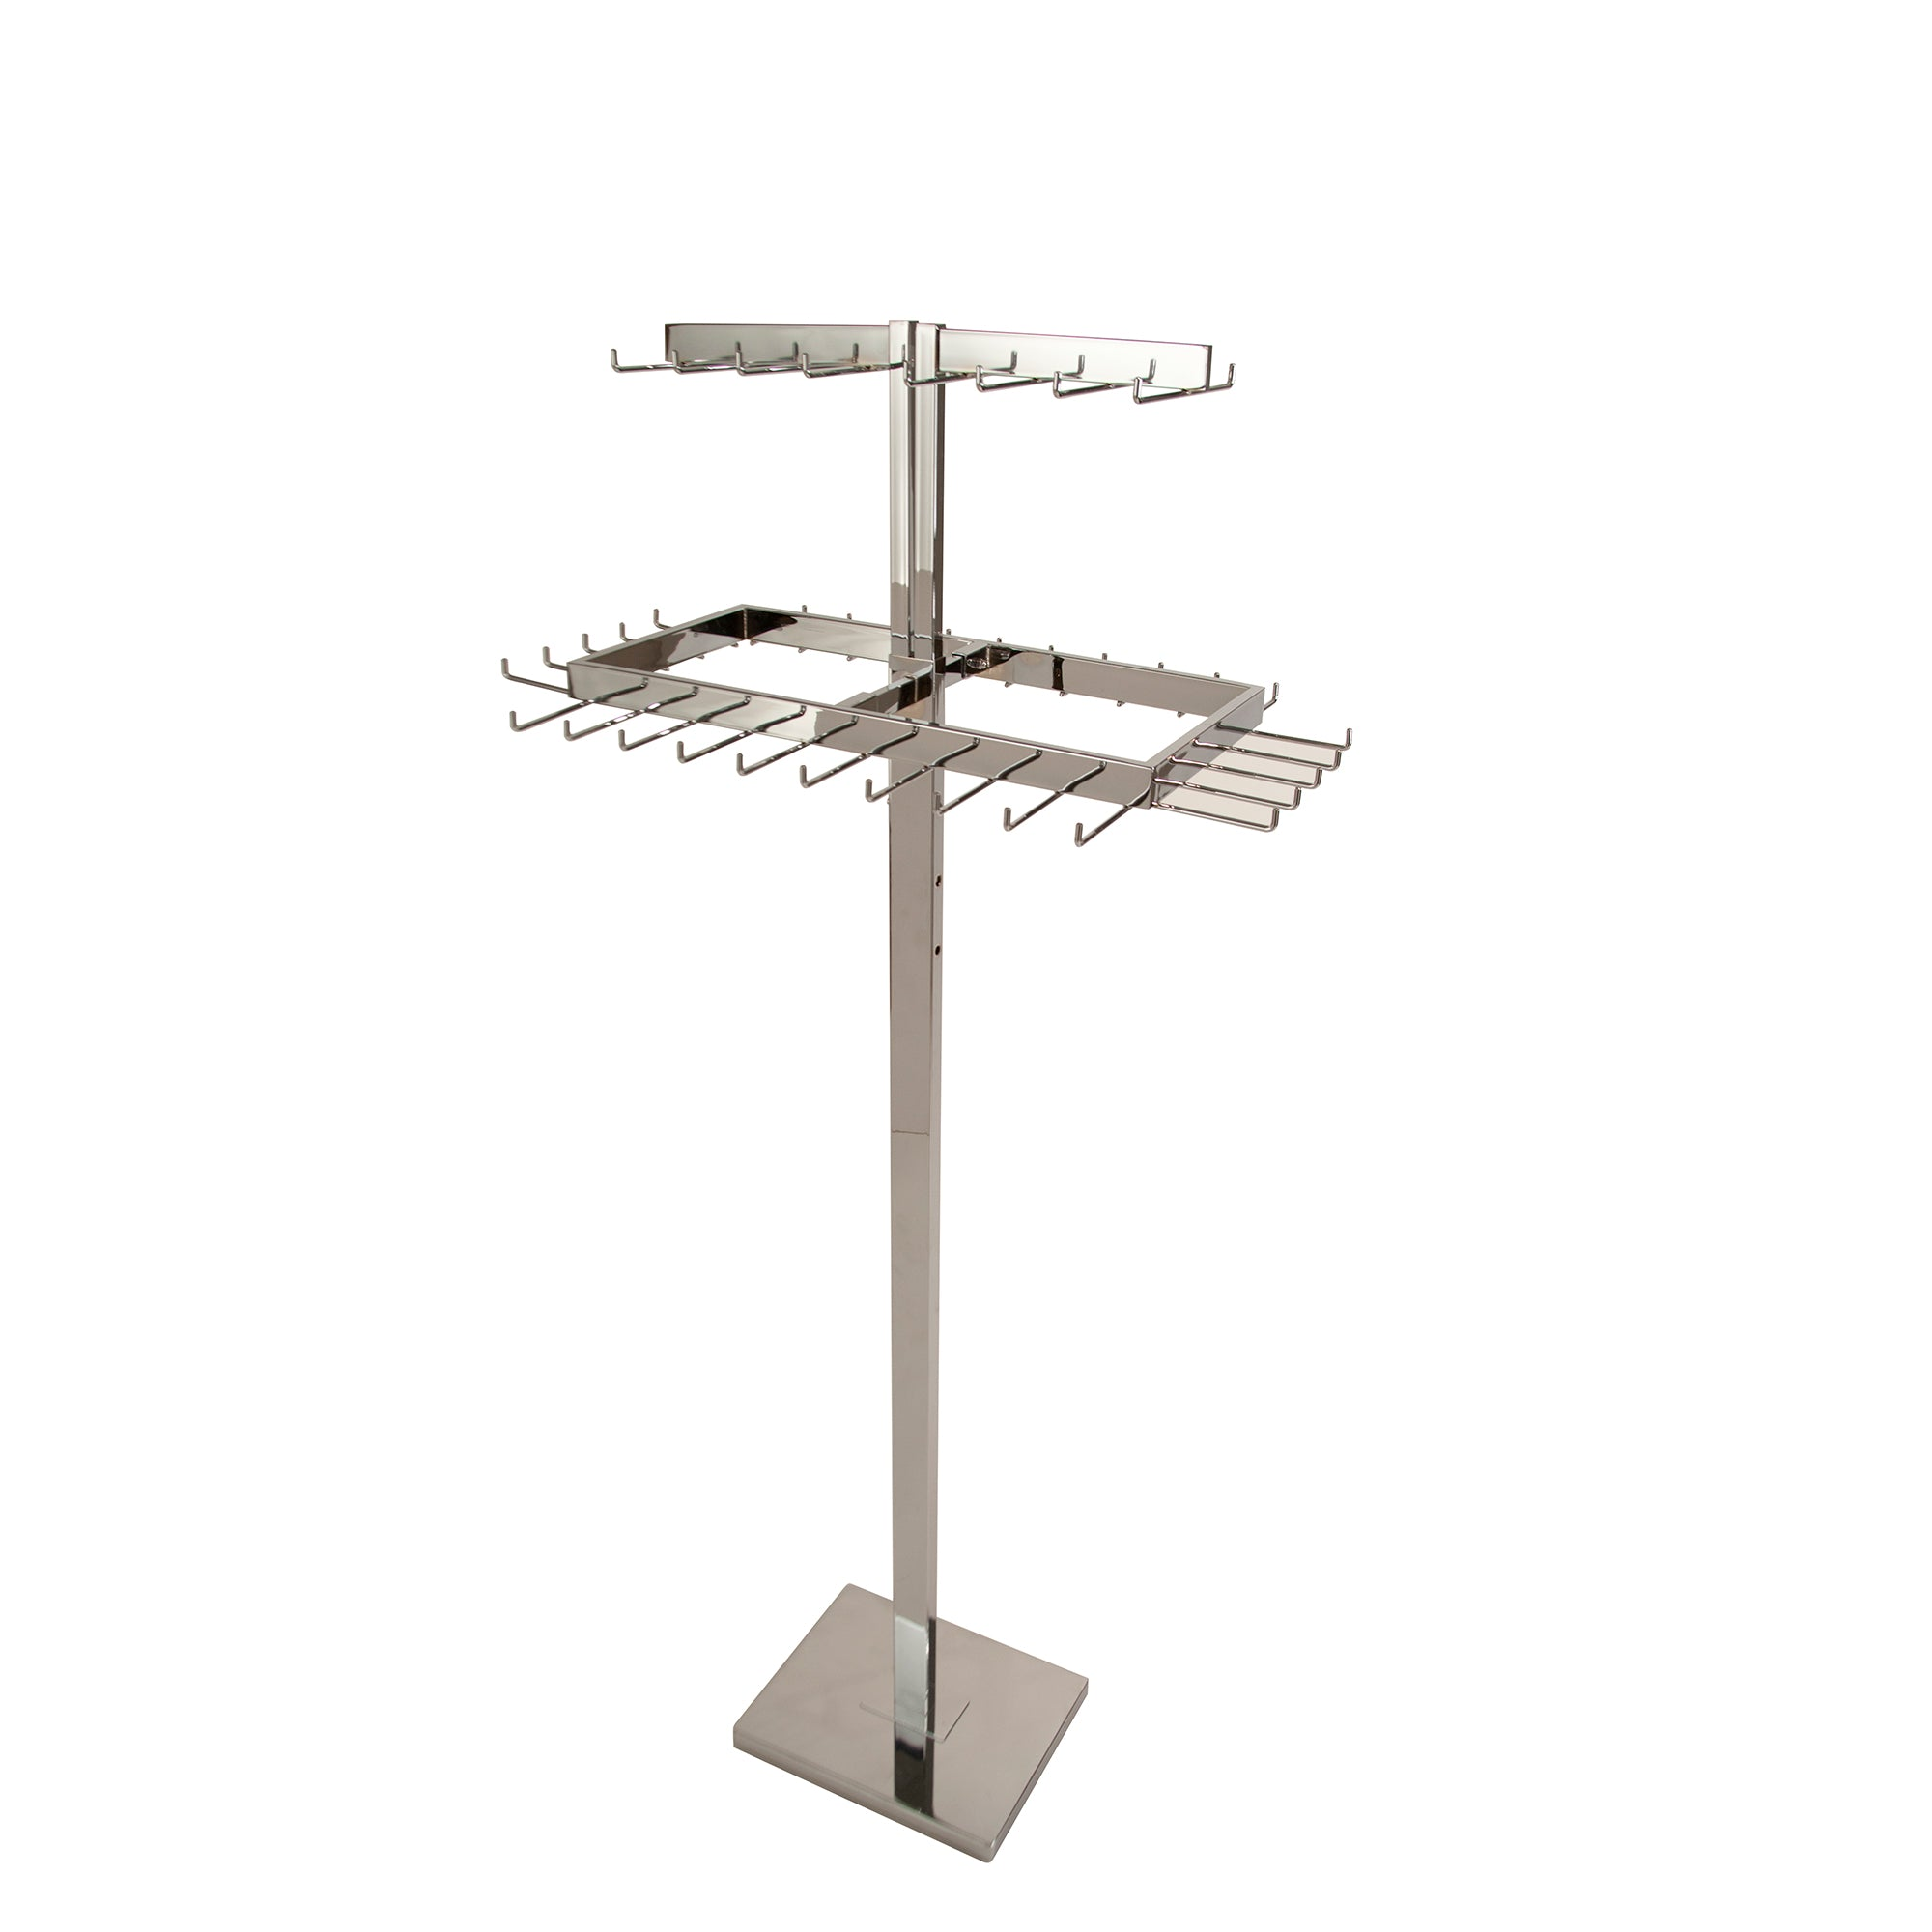 2 Tier Adjustable Rectangular Belt Rack - Las Vegas Mannequins